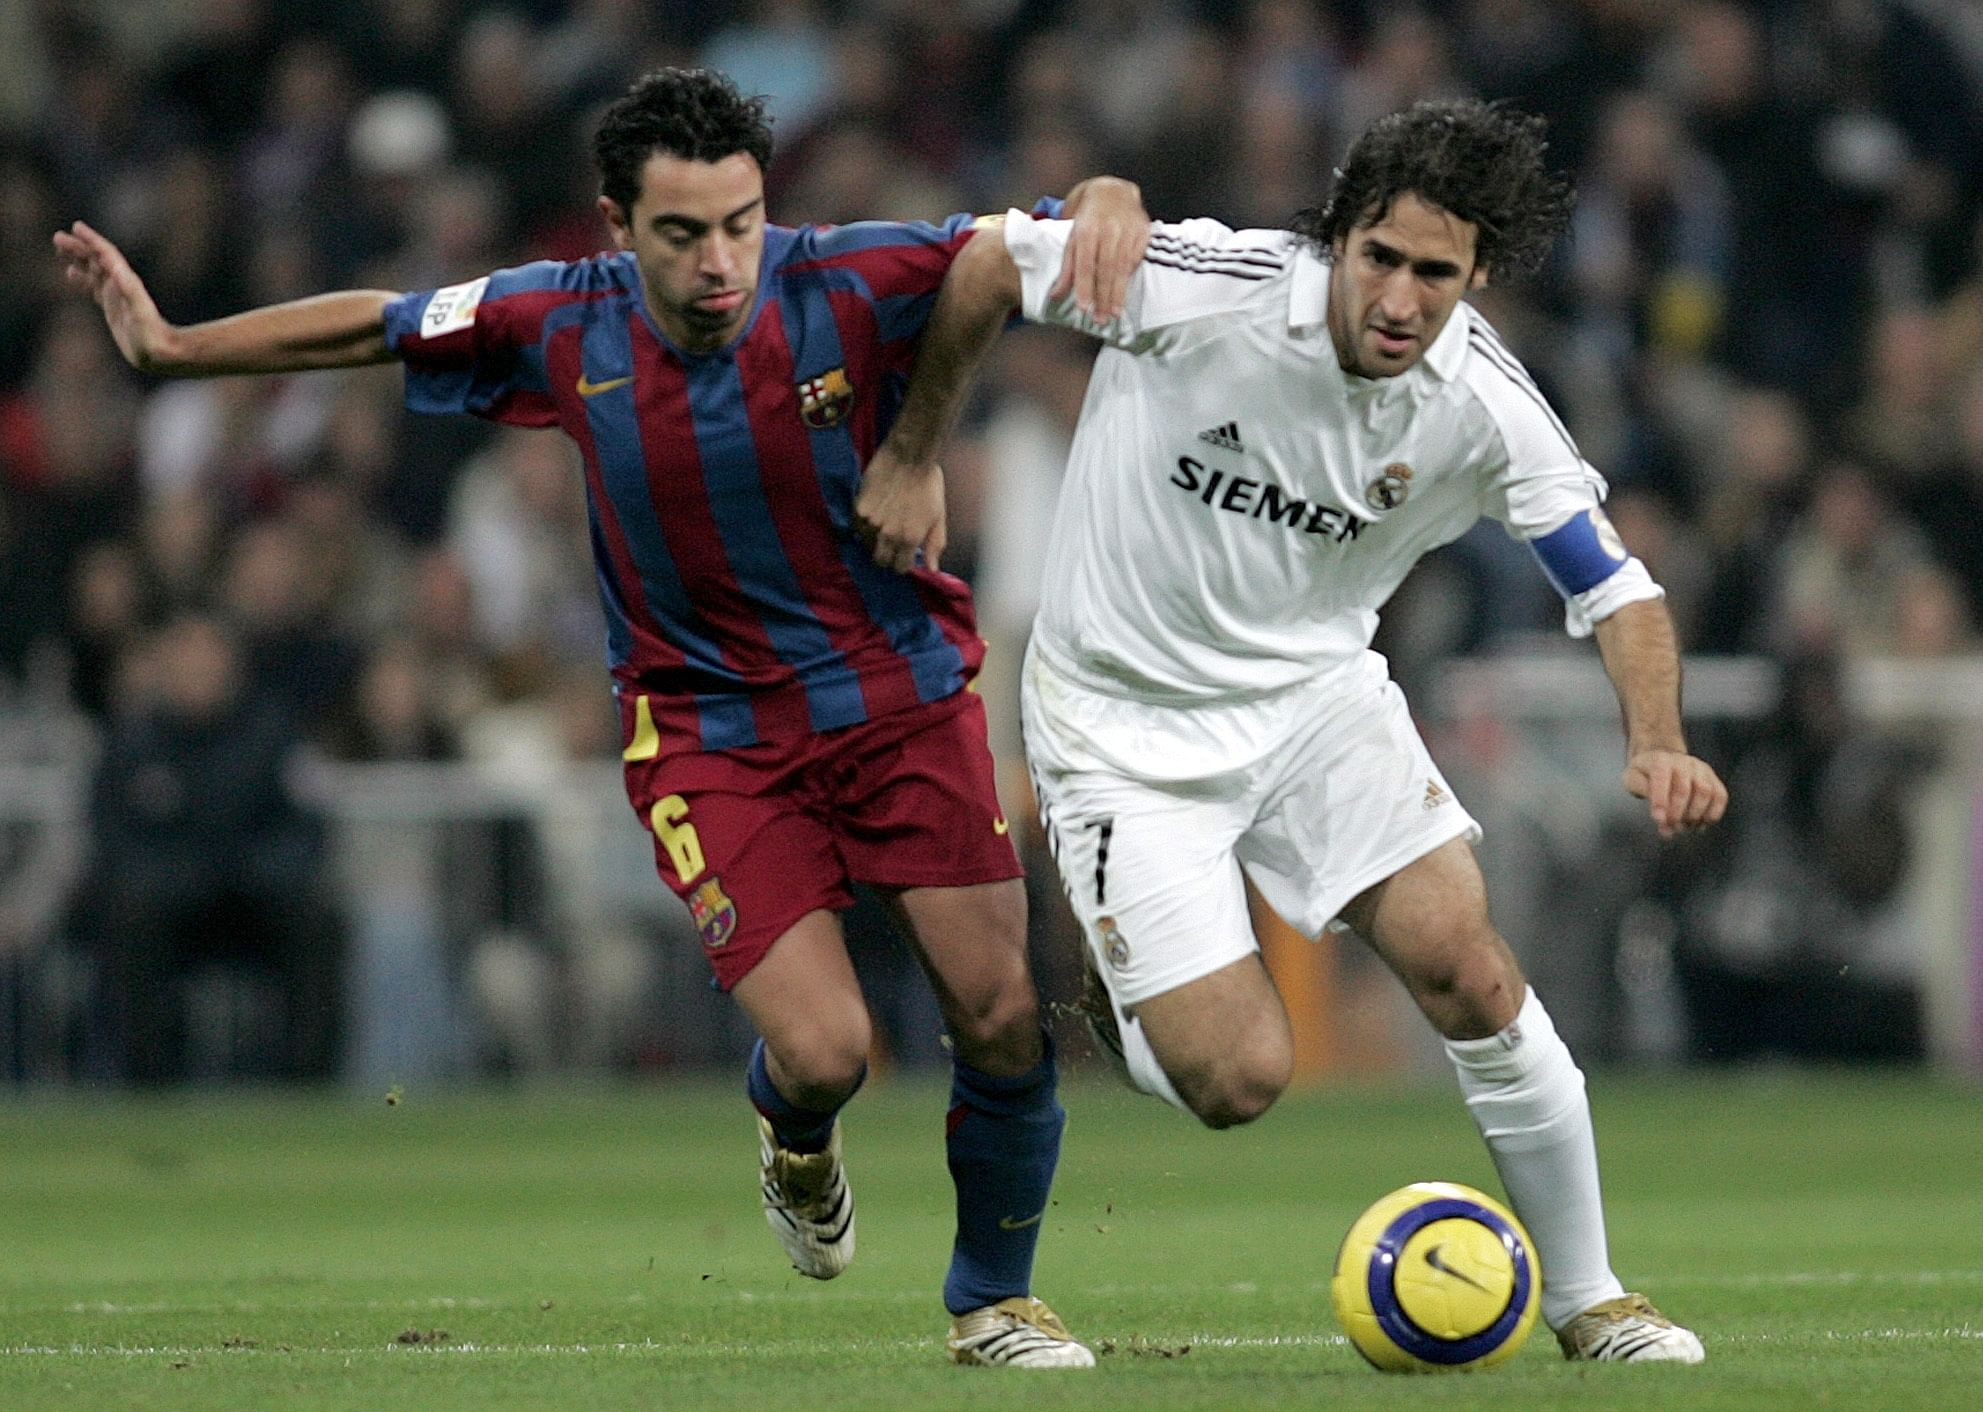 UEFA Champions League: Xavi equals Raul and sets sight on Giggs' record